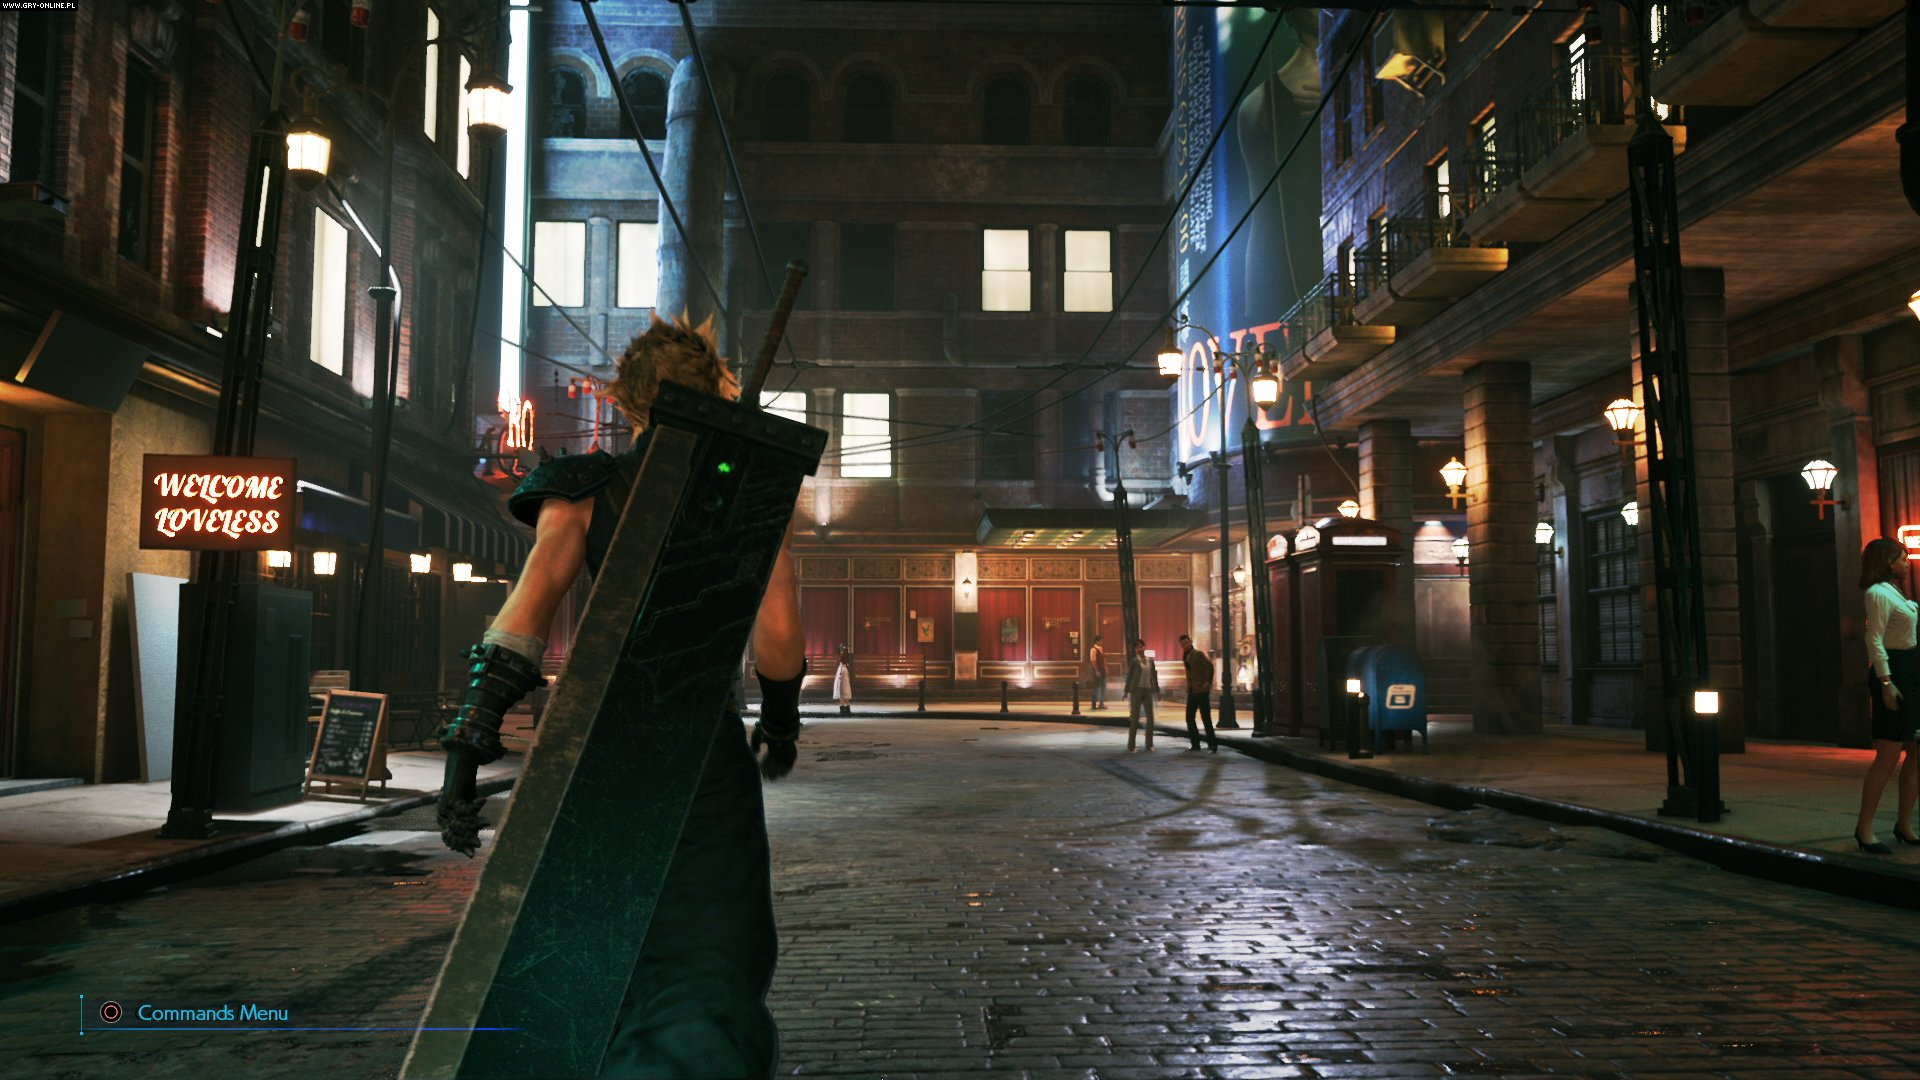 Final Fantasy VII Remake PS4 Games Image 67/86, Square-Enix / Eidos